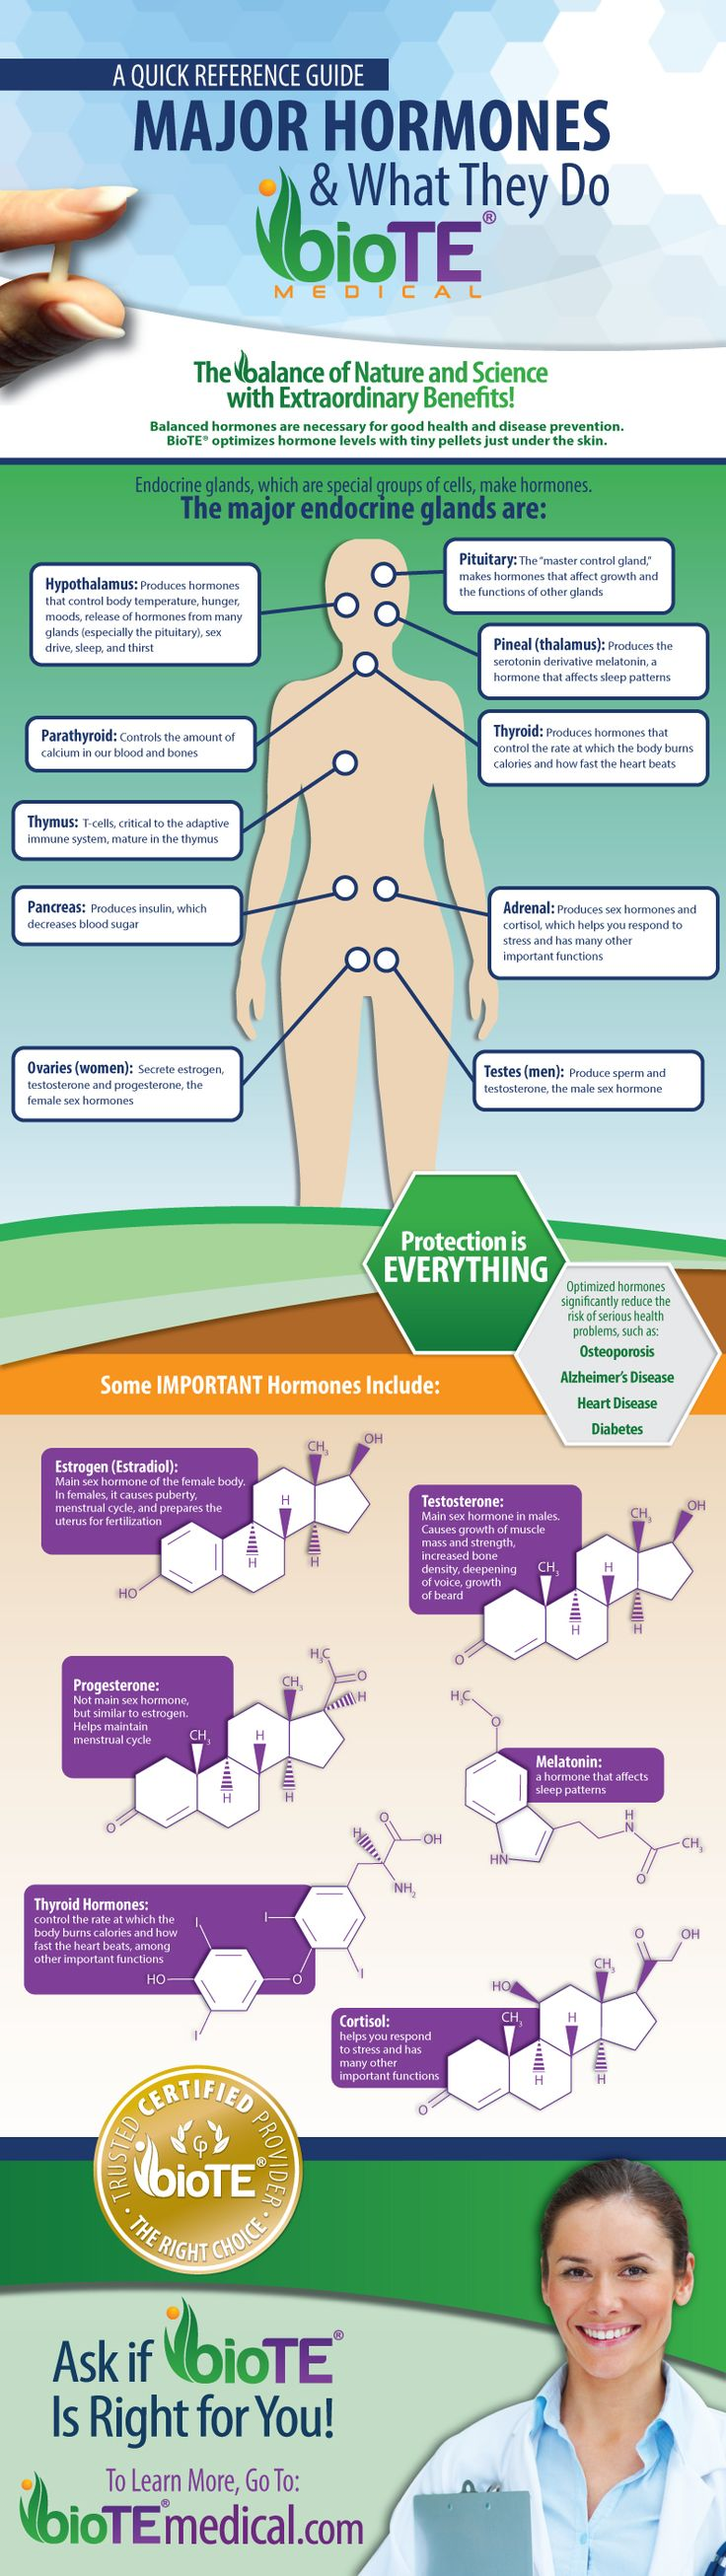 1000+ ideas about Hormone Replacement Therapy on Pinterest ...